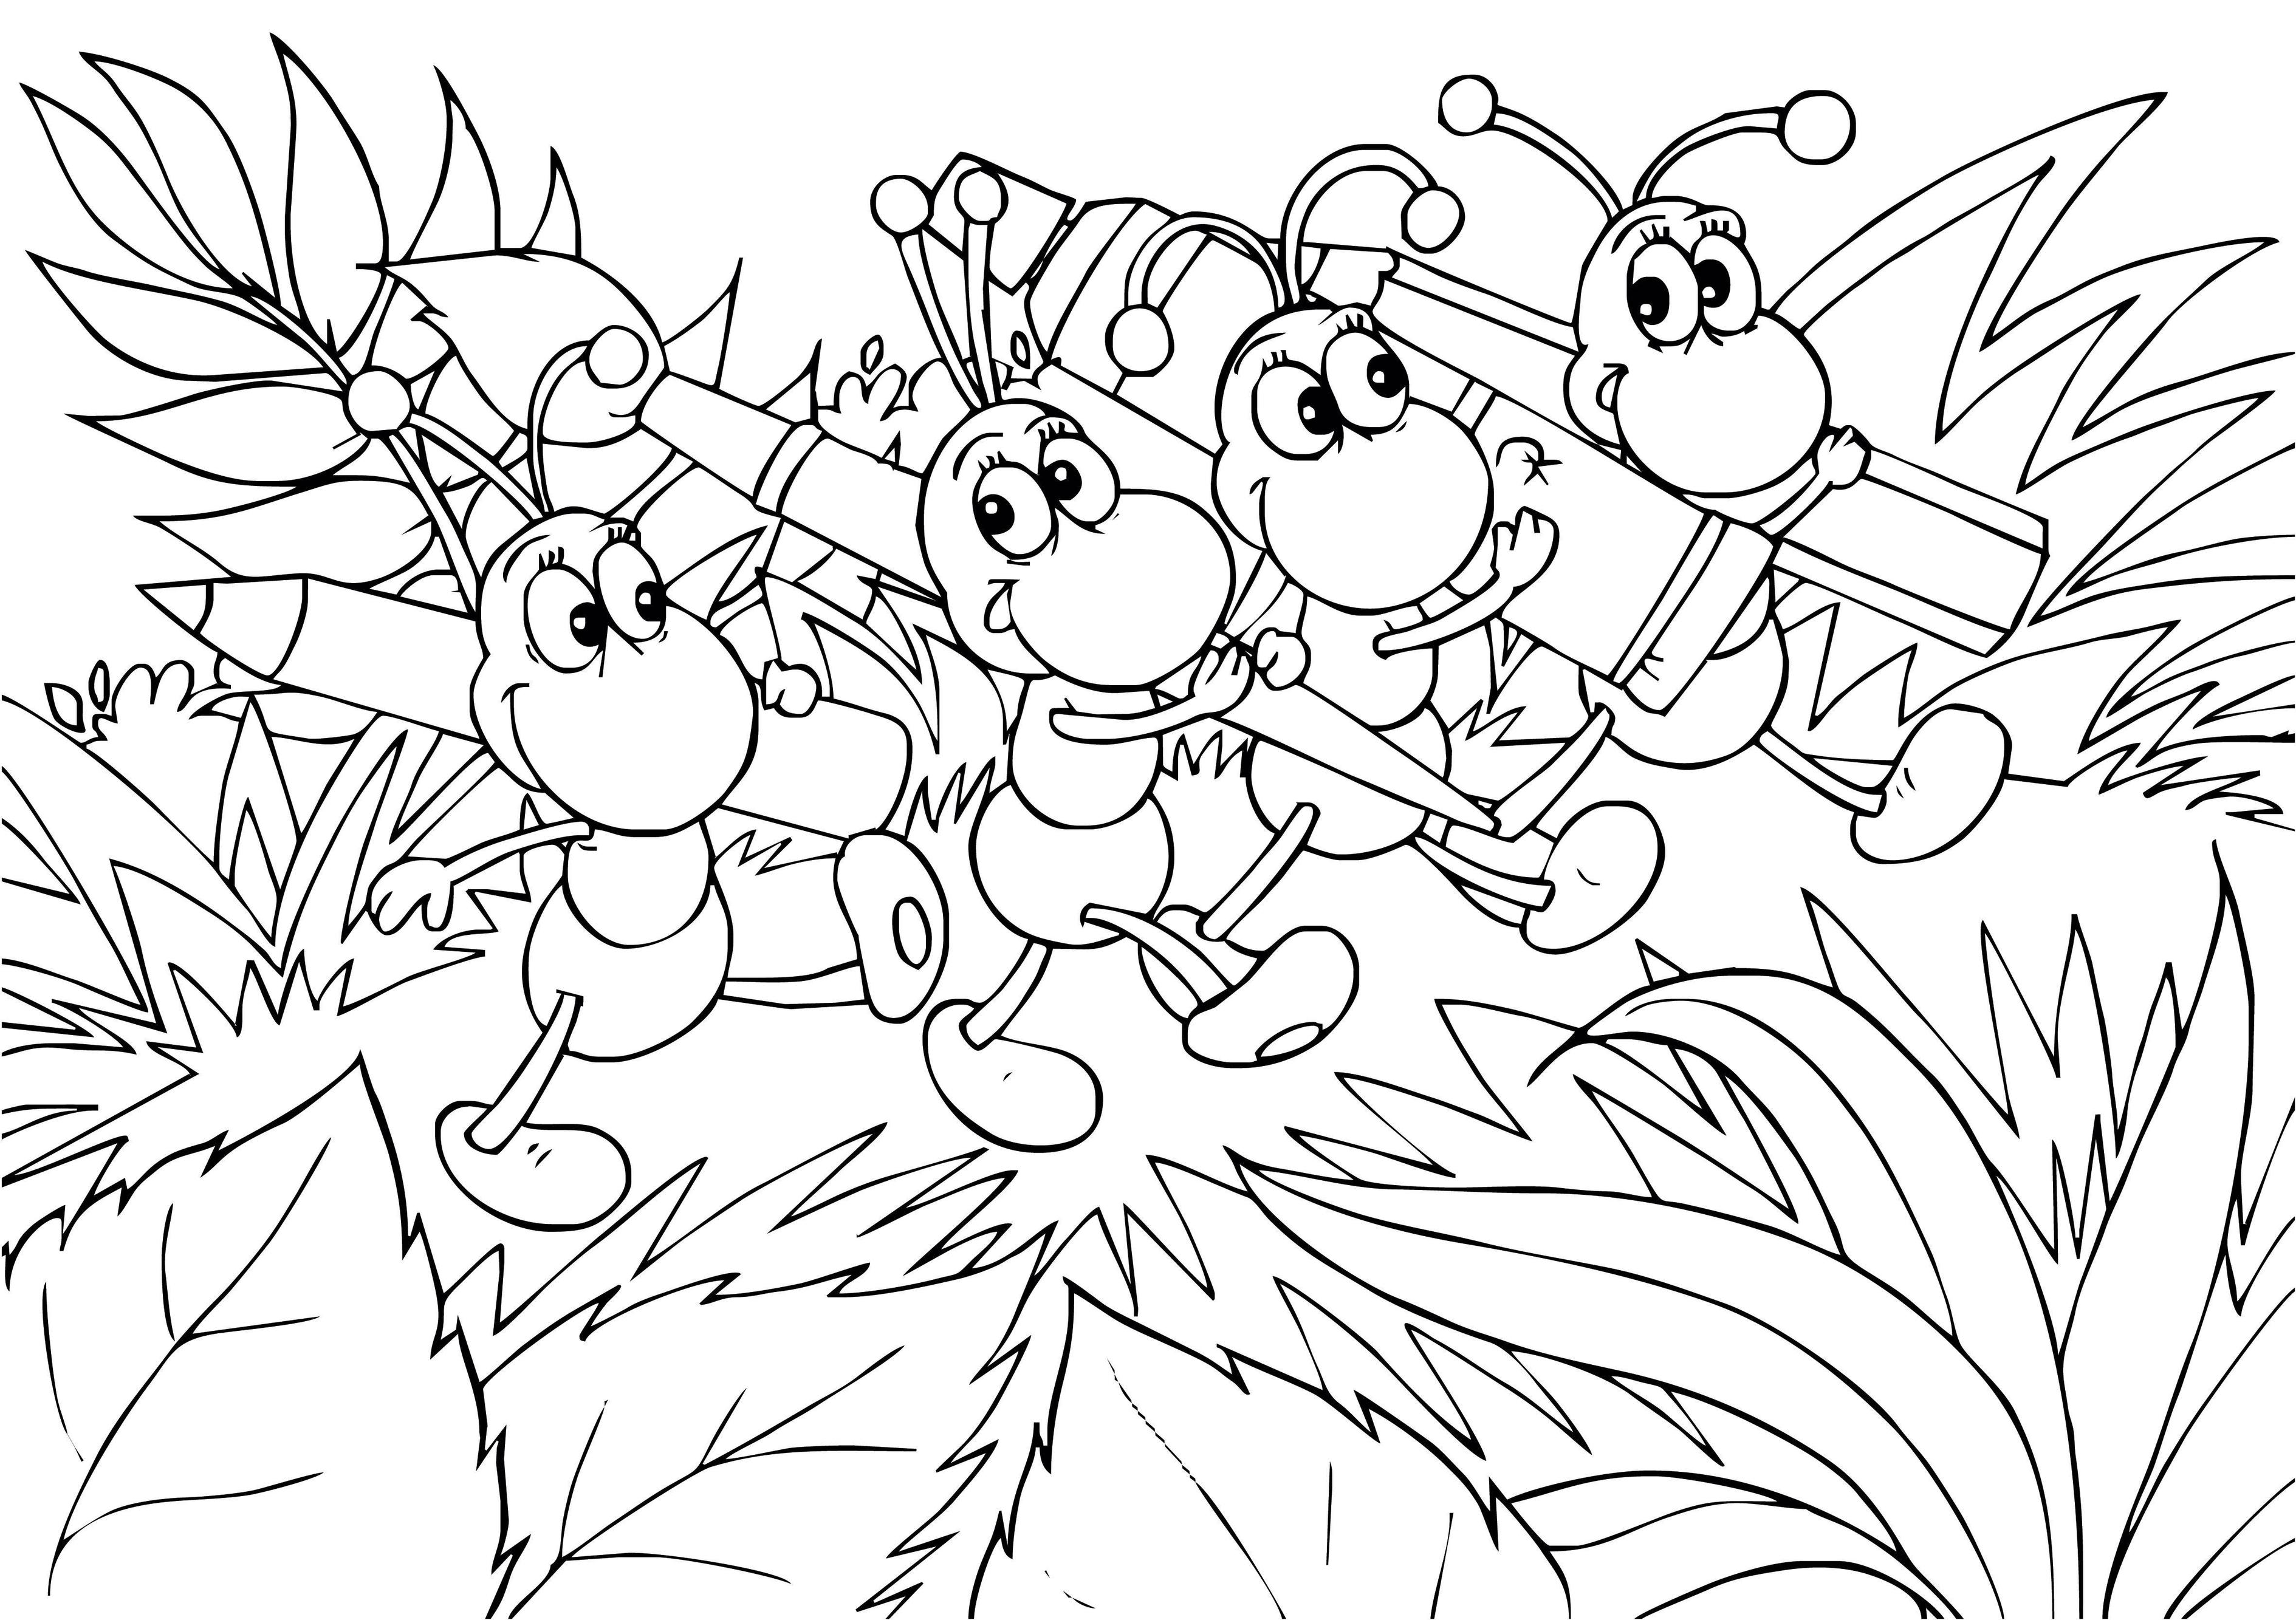 Ant Outline Drawing Ant Outline Coloring Page Cute Ant Clip Art